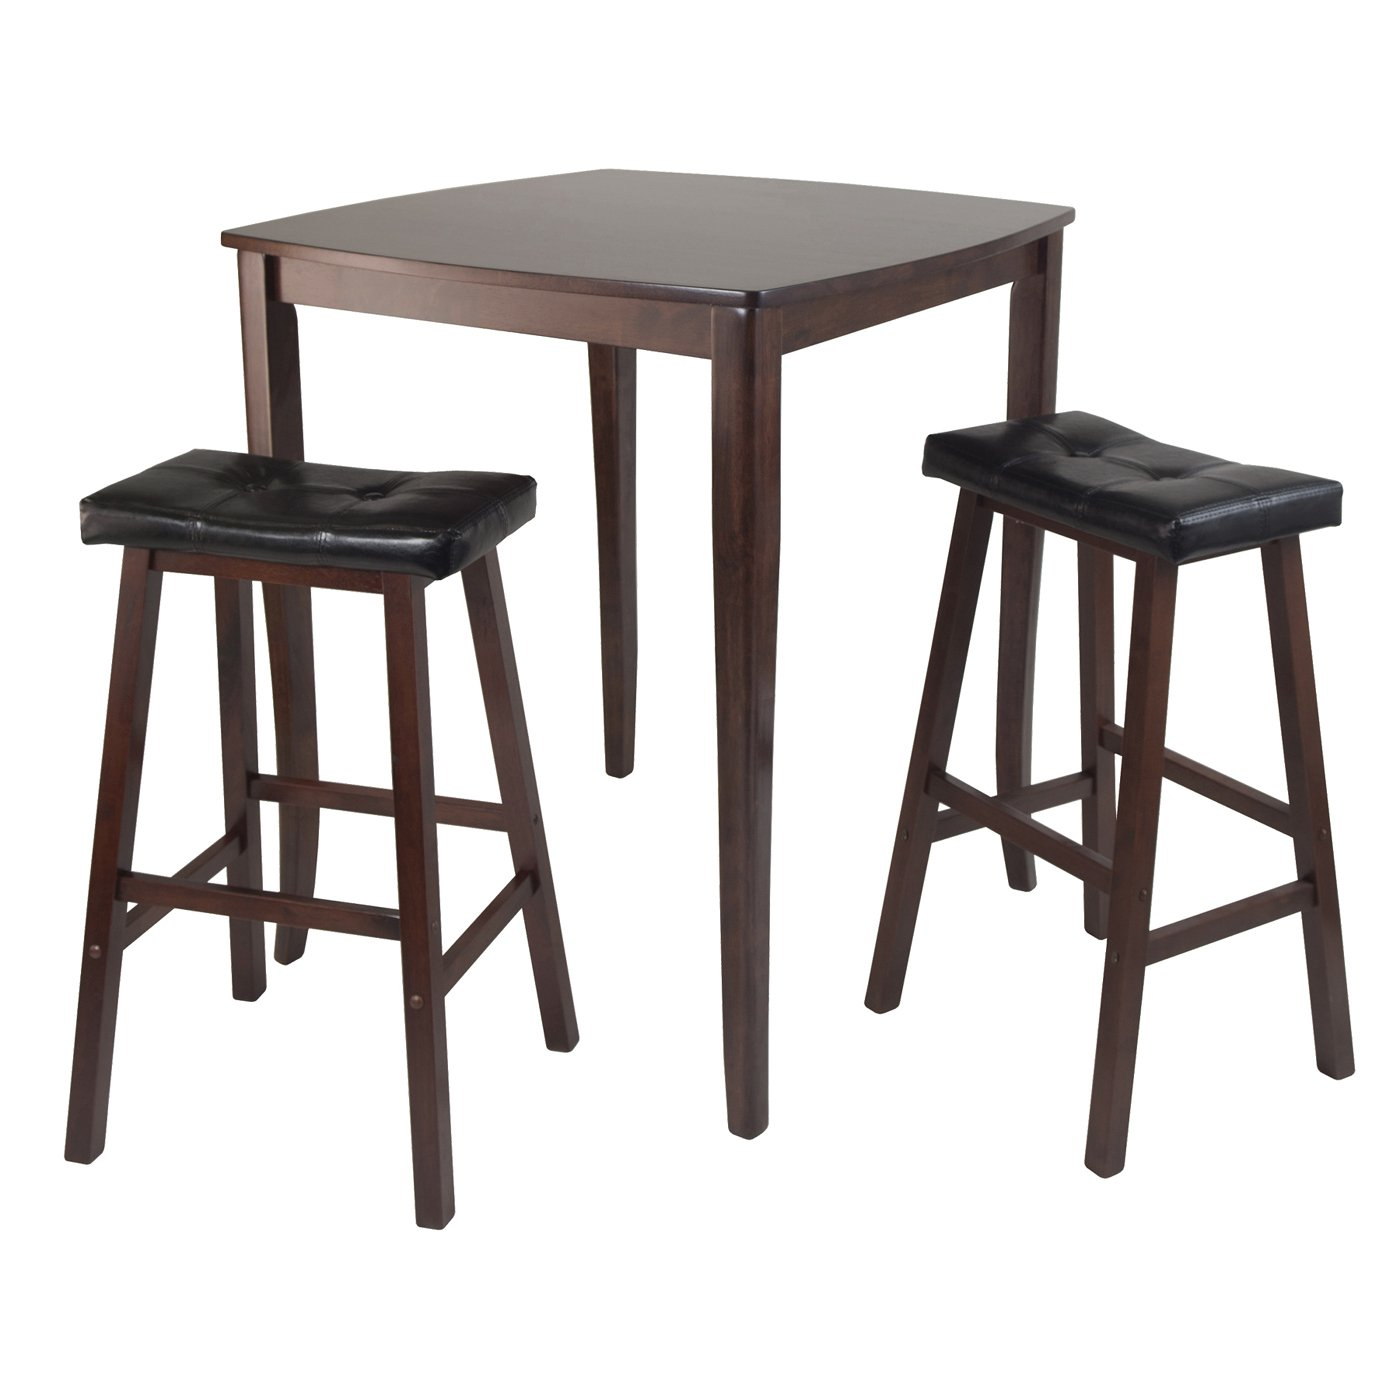 Winsome Wood Inglewood 3 Piece High Pub Table Dining Set In Best And Newest Winsome 3 Piece Counter Height Dining Sets (Photo 11 of 20)